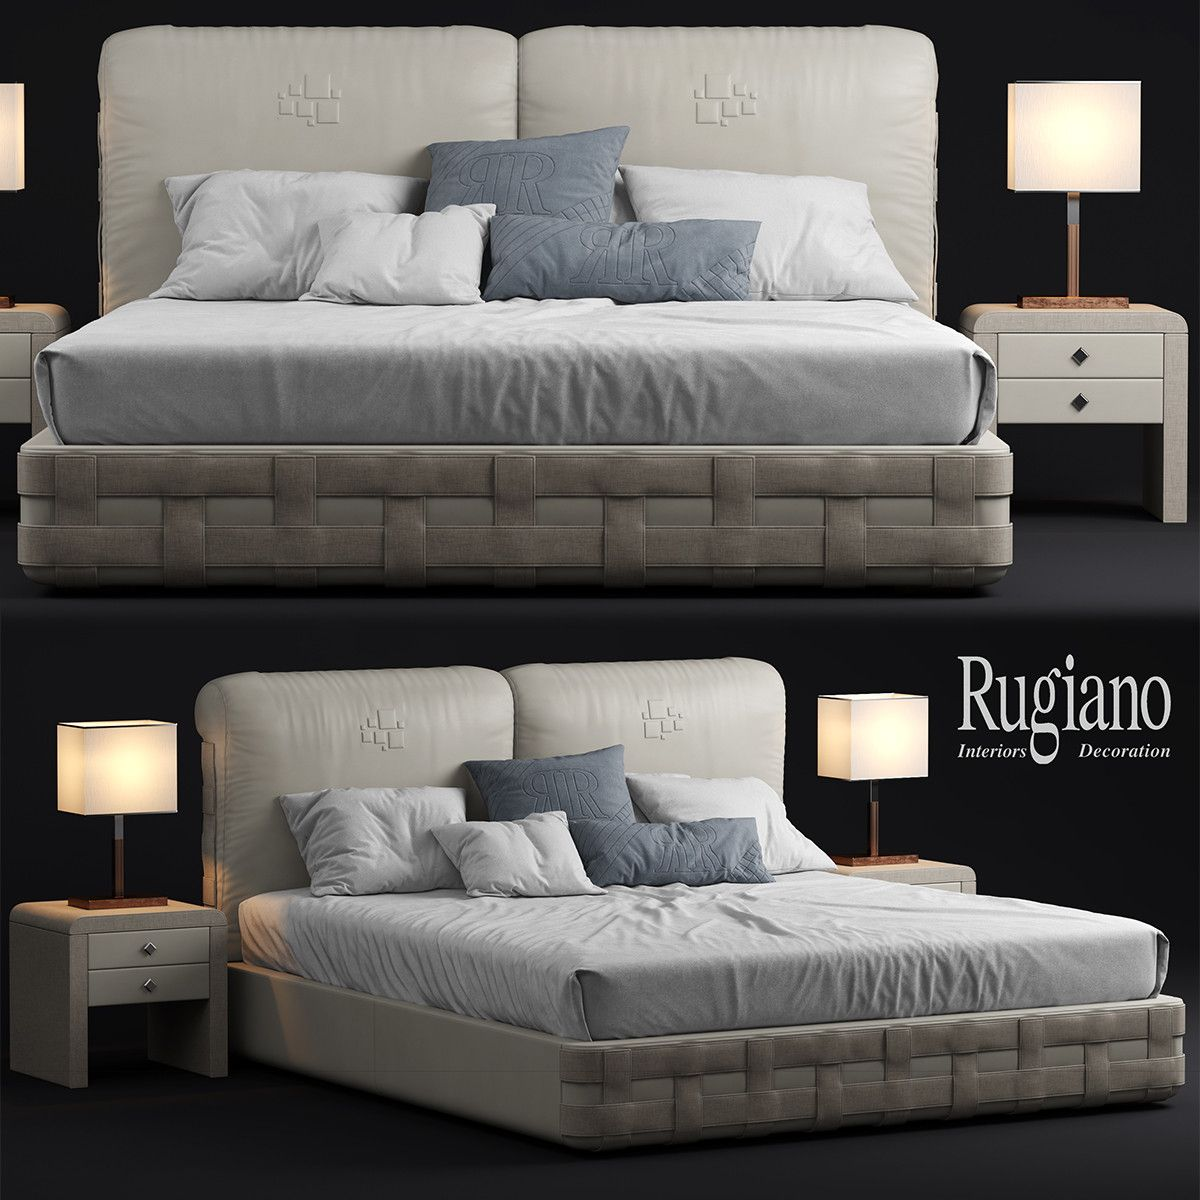 Beds Rugiano Beds Buy At The Request Modernh Com Dormitorios  # Rugiano Muebles